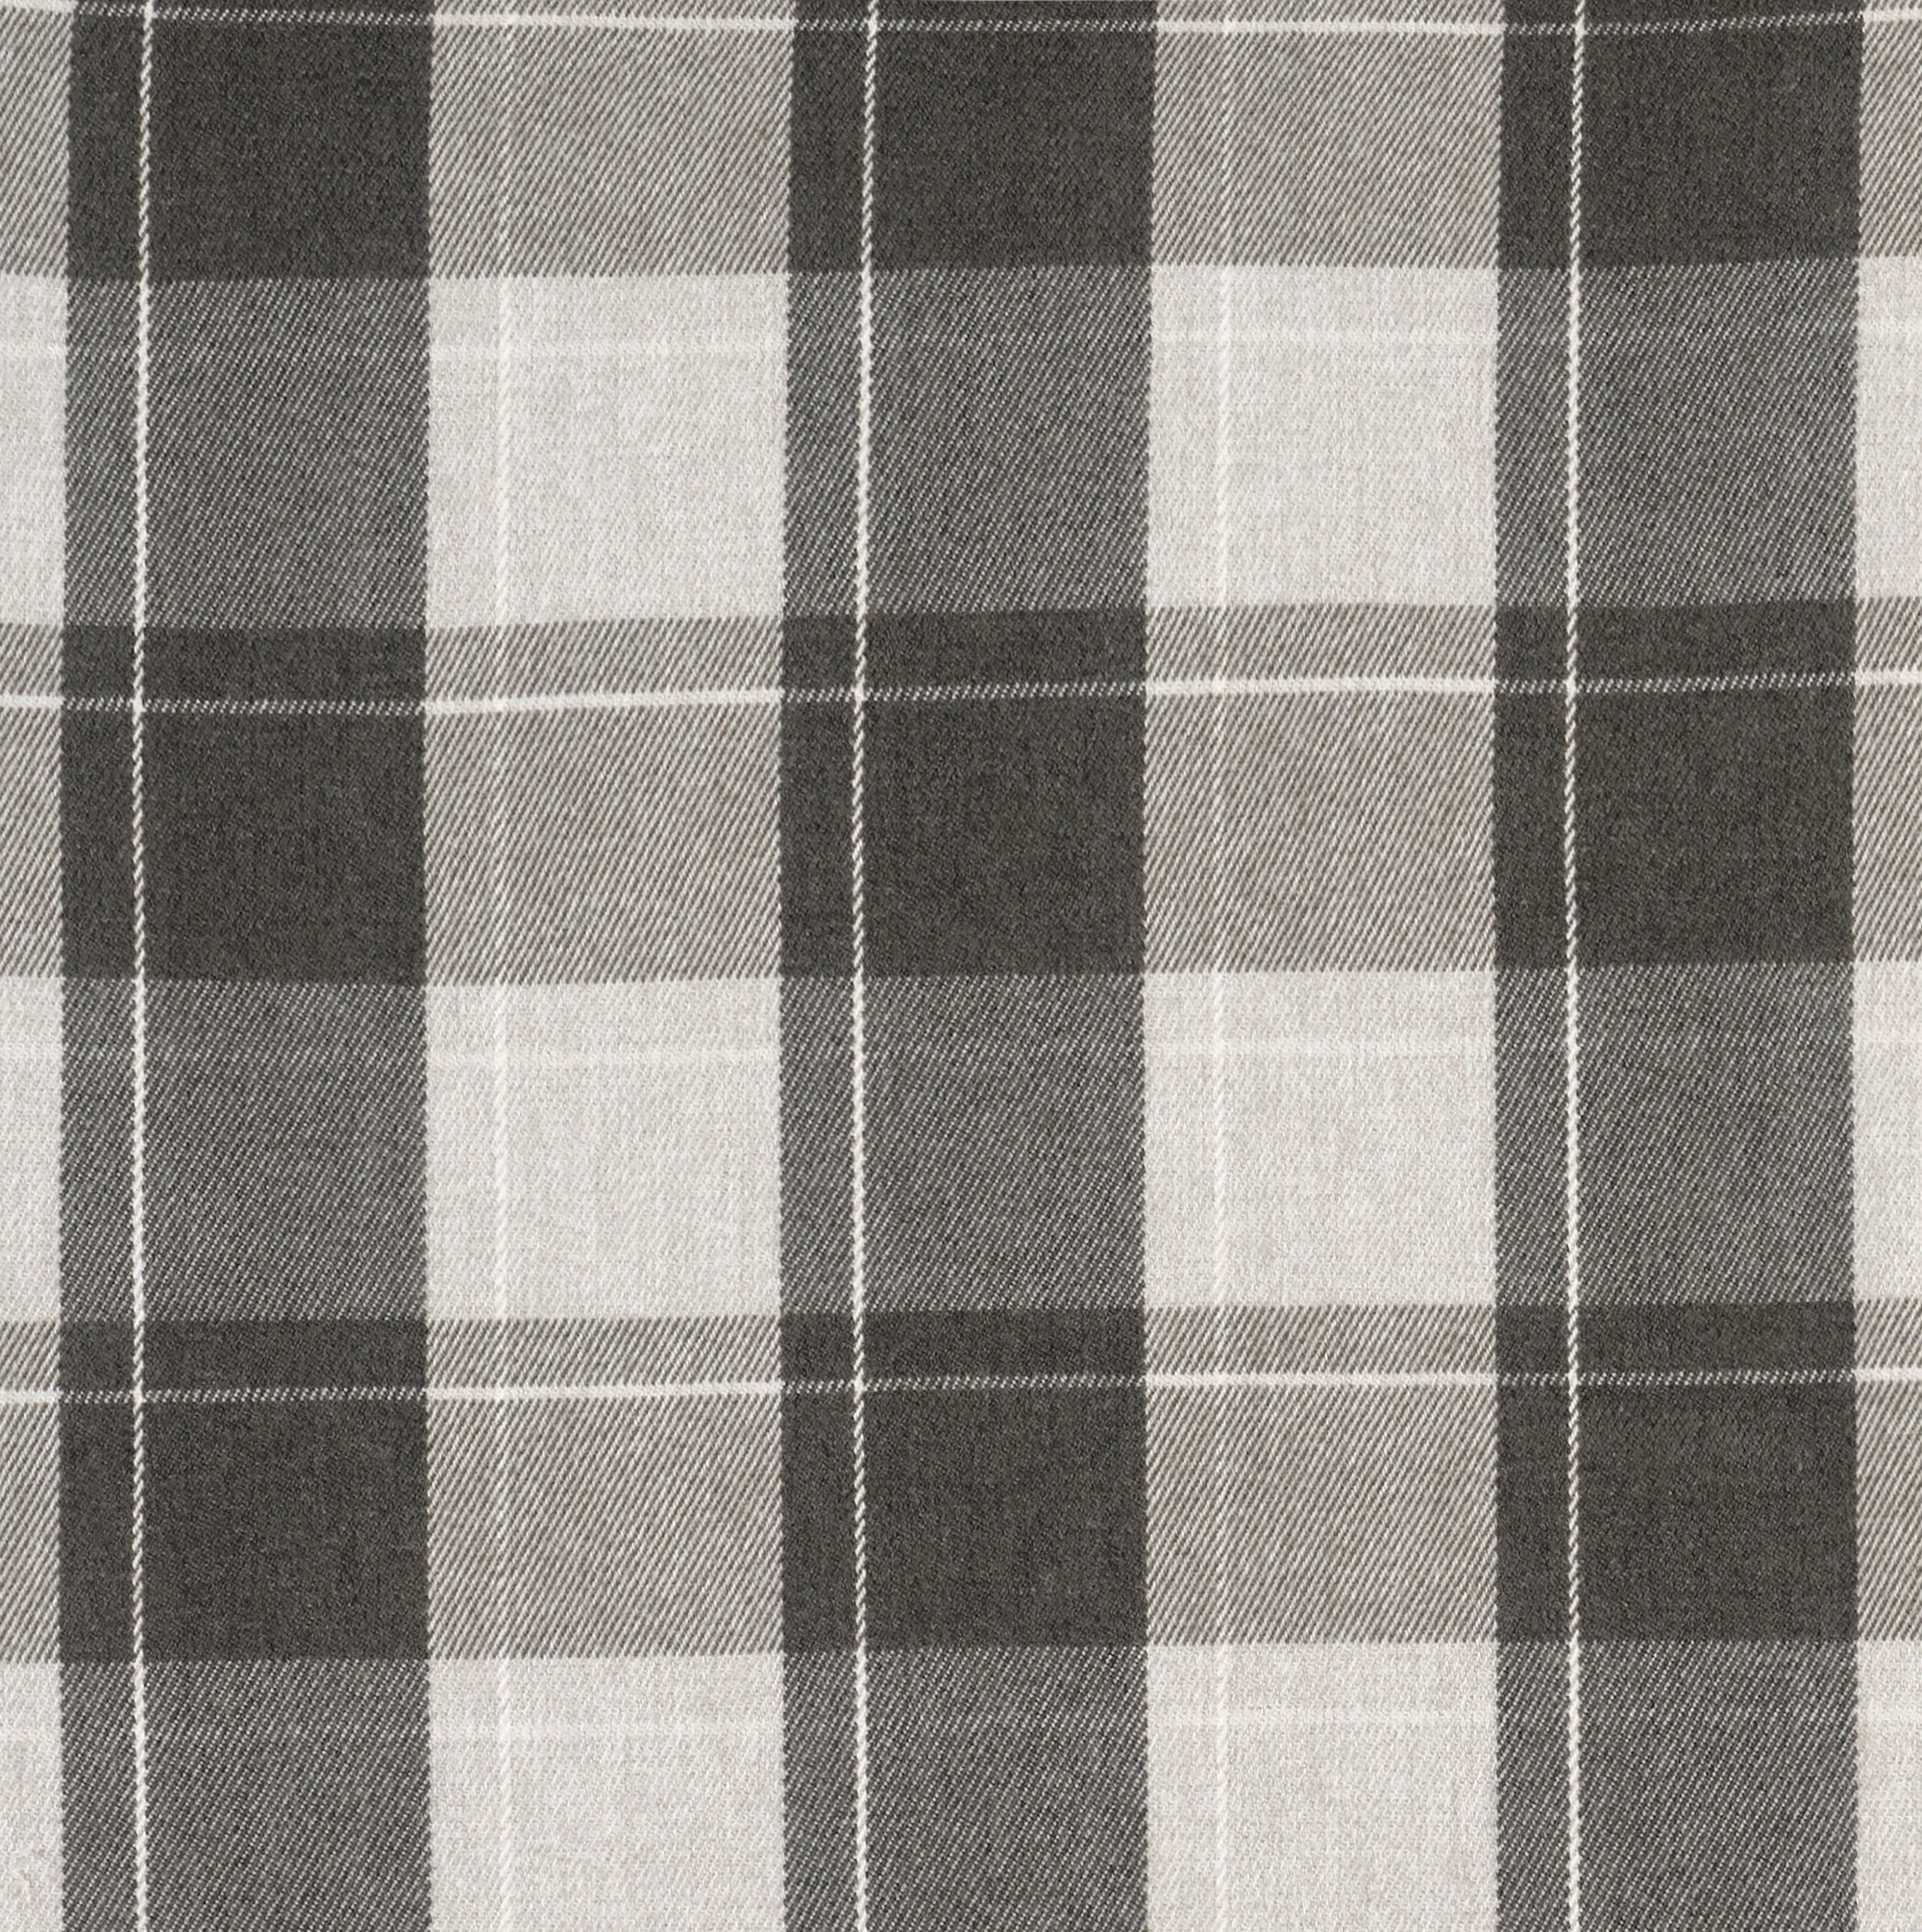 Fellcroft Charcoal Roman Blind Plaid Check Roman Blinds Roman Within Plaid Roman Blinds (Image 3 of 15)